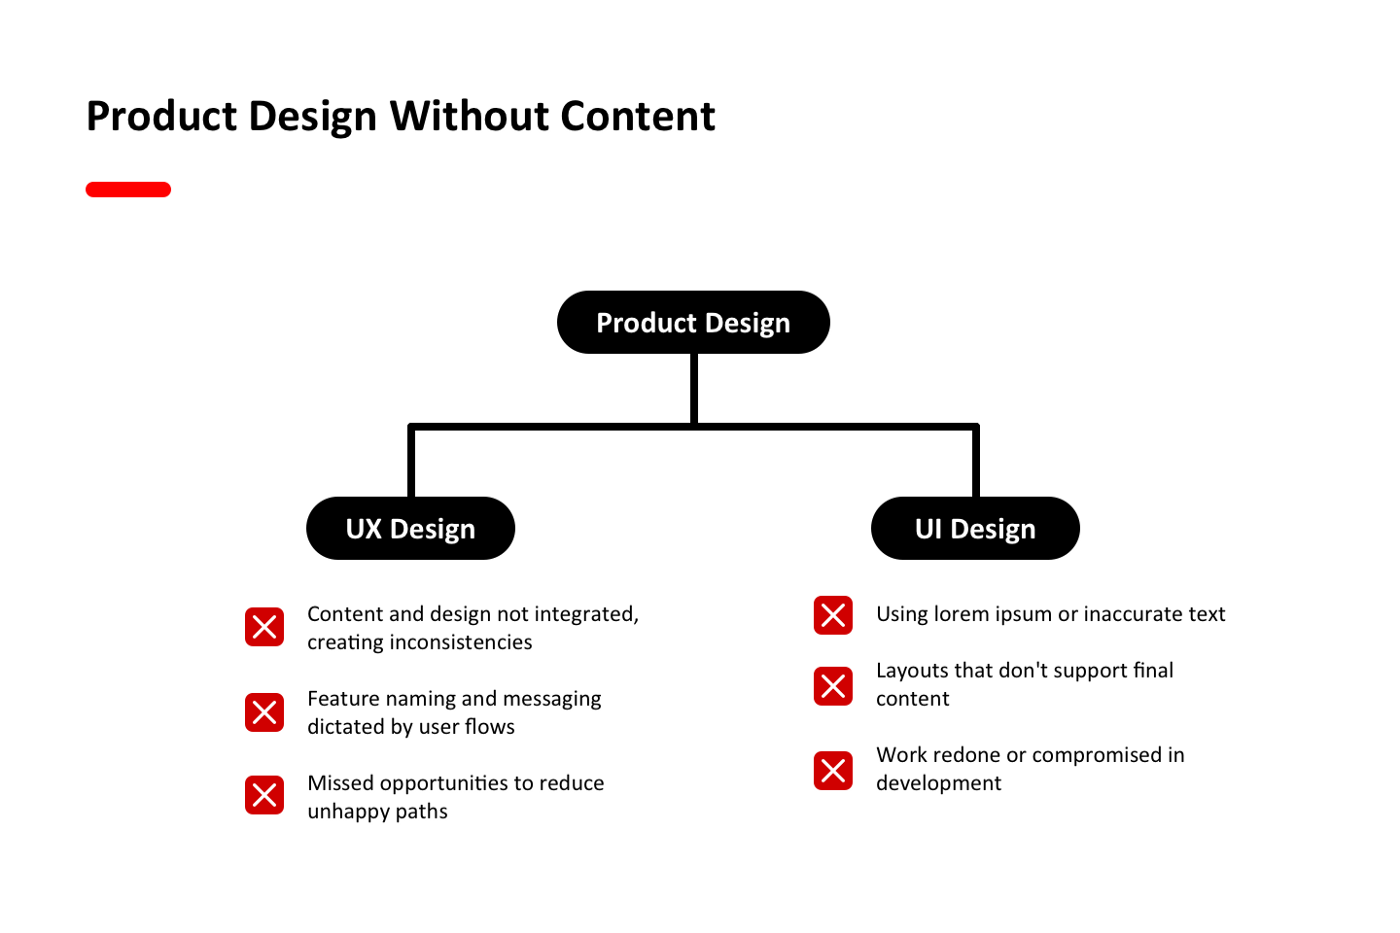 Product design without content design leads to problems in UX design like content and design not being integrated, feature naming and messaging being dictated by user flows, and missed opportunities to reduce unhappy paths. It also leads to problems in UI design like using lorem ipsum or inaccurate text, layouts that don't support final content, and work redone or compromised in development.